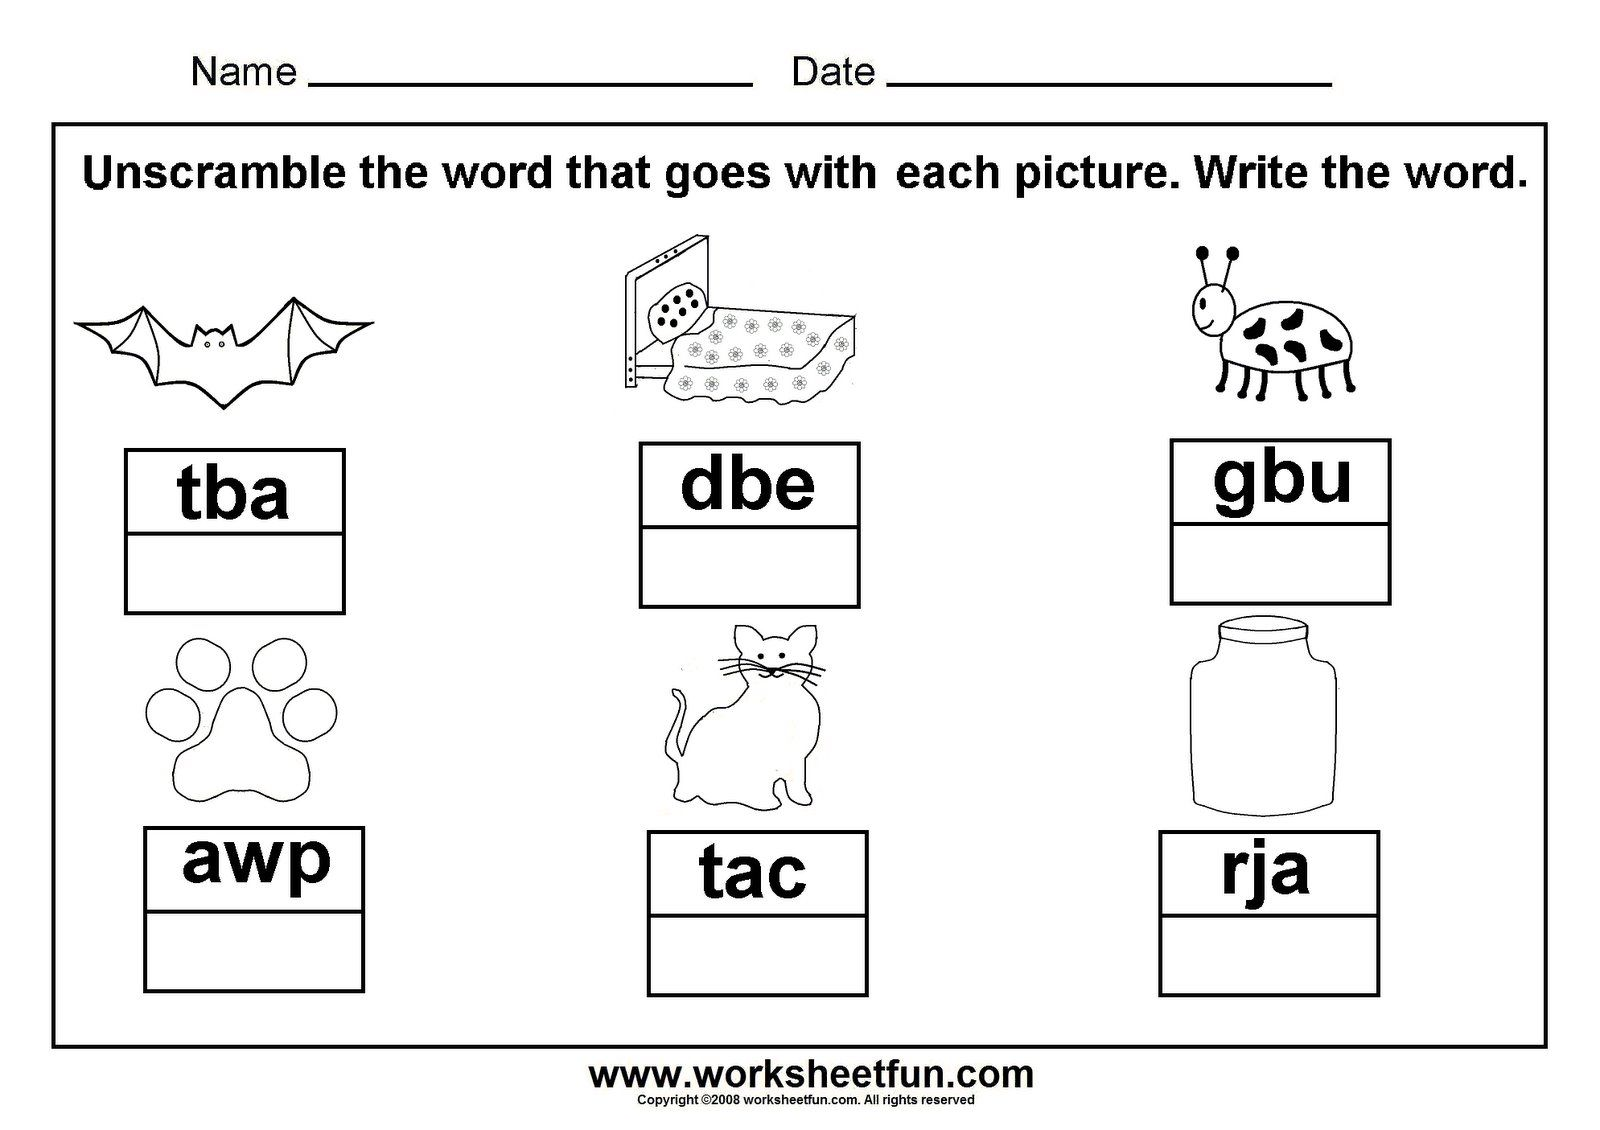 Unscramble Words Worksheets For Grade 1 Learning How To Read